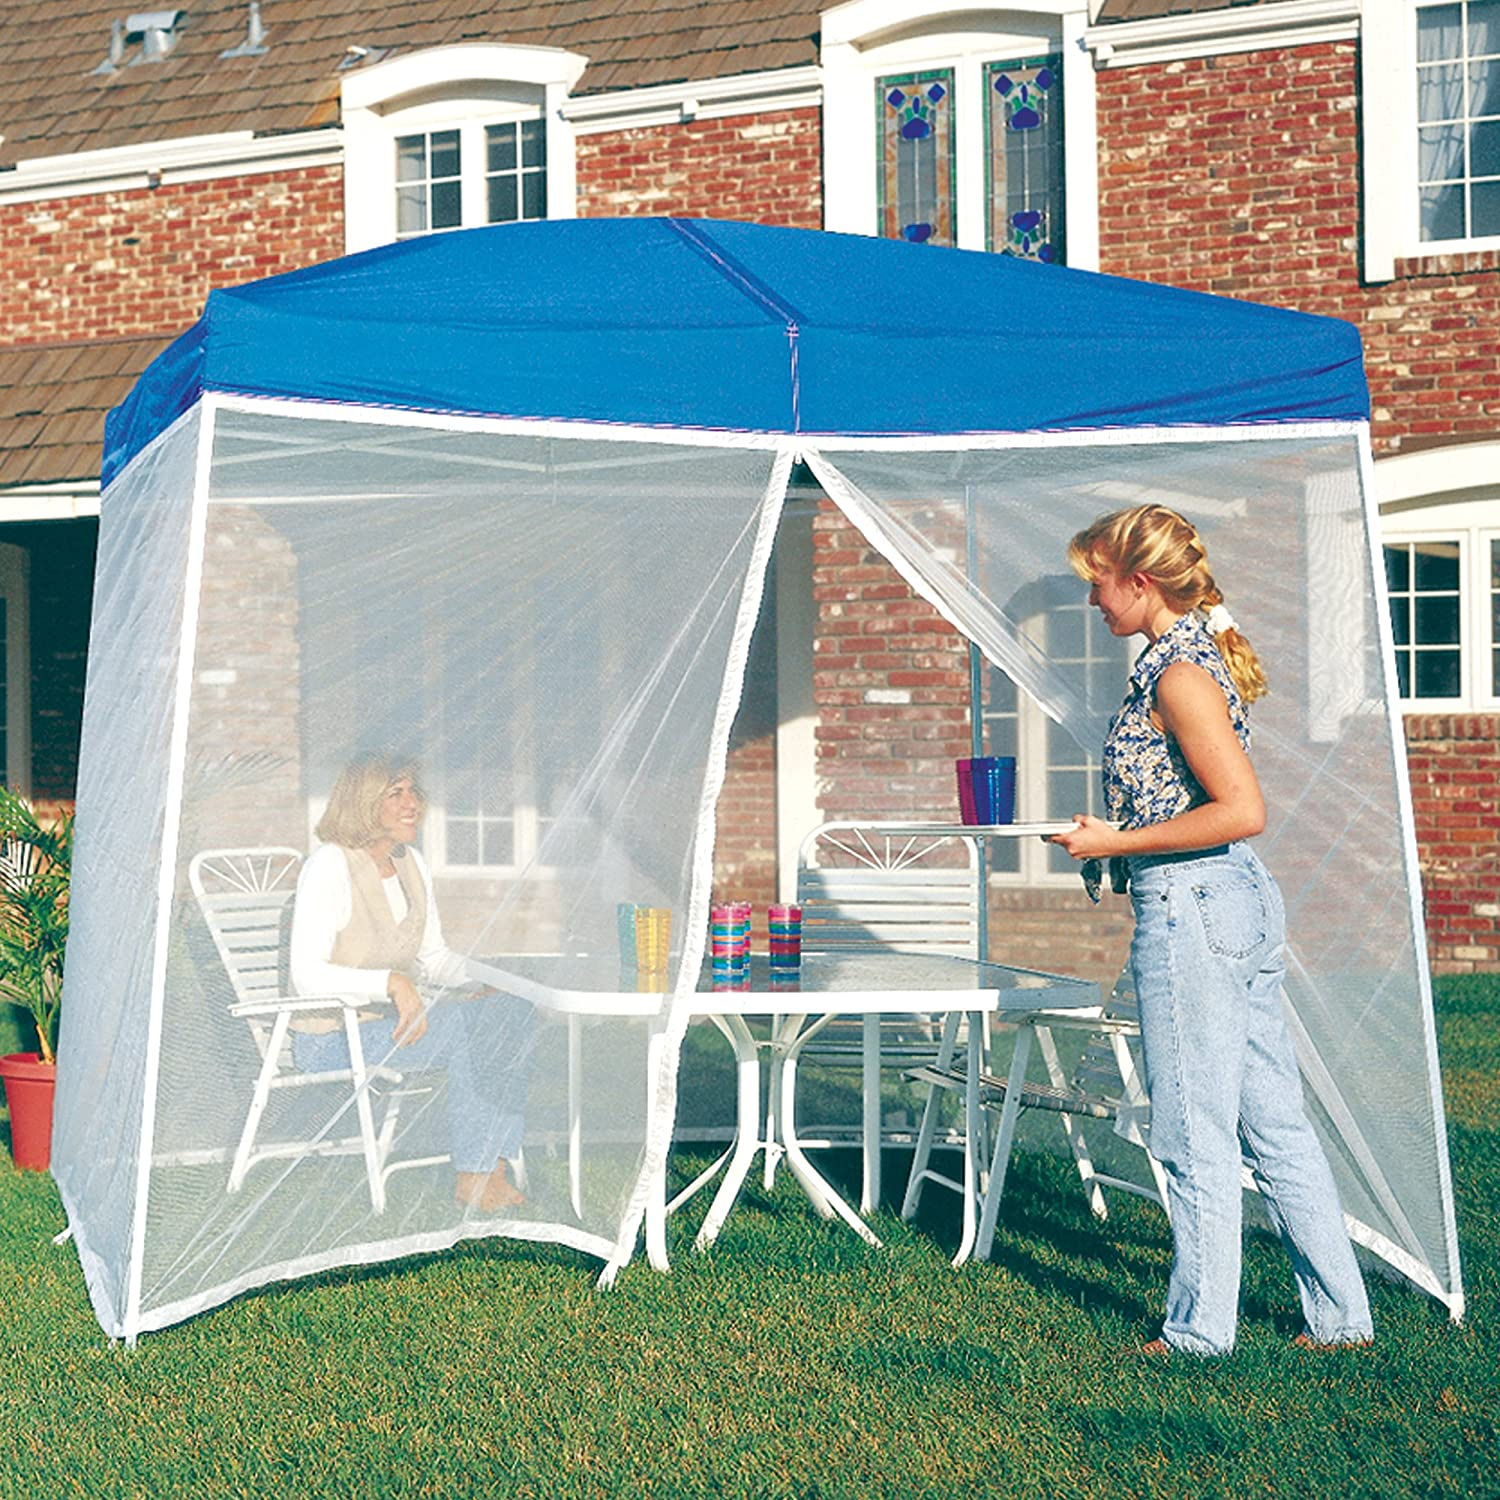 Amazon.com  E-Z Up Screen Room for a 10u0027x10u0027 Dome or Sierra Instant Shelter  Outdoor Canopies  Garden u0026 Outdoor & Amazon.com : E-Z Up Screen Room for a 10u0027x10u0027 Dome or Sierra ...